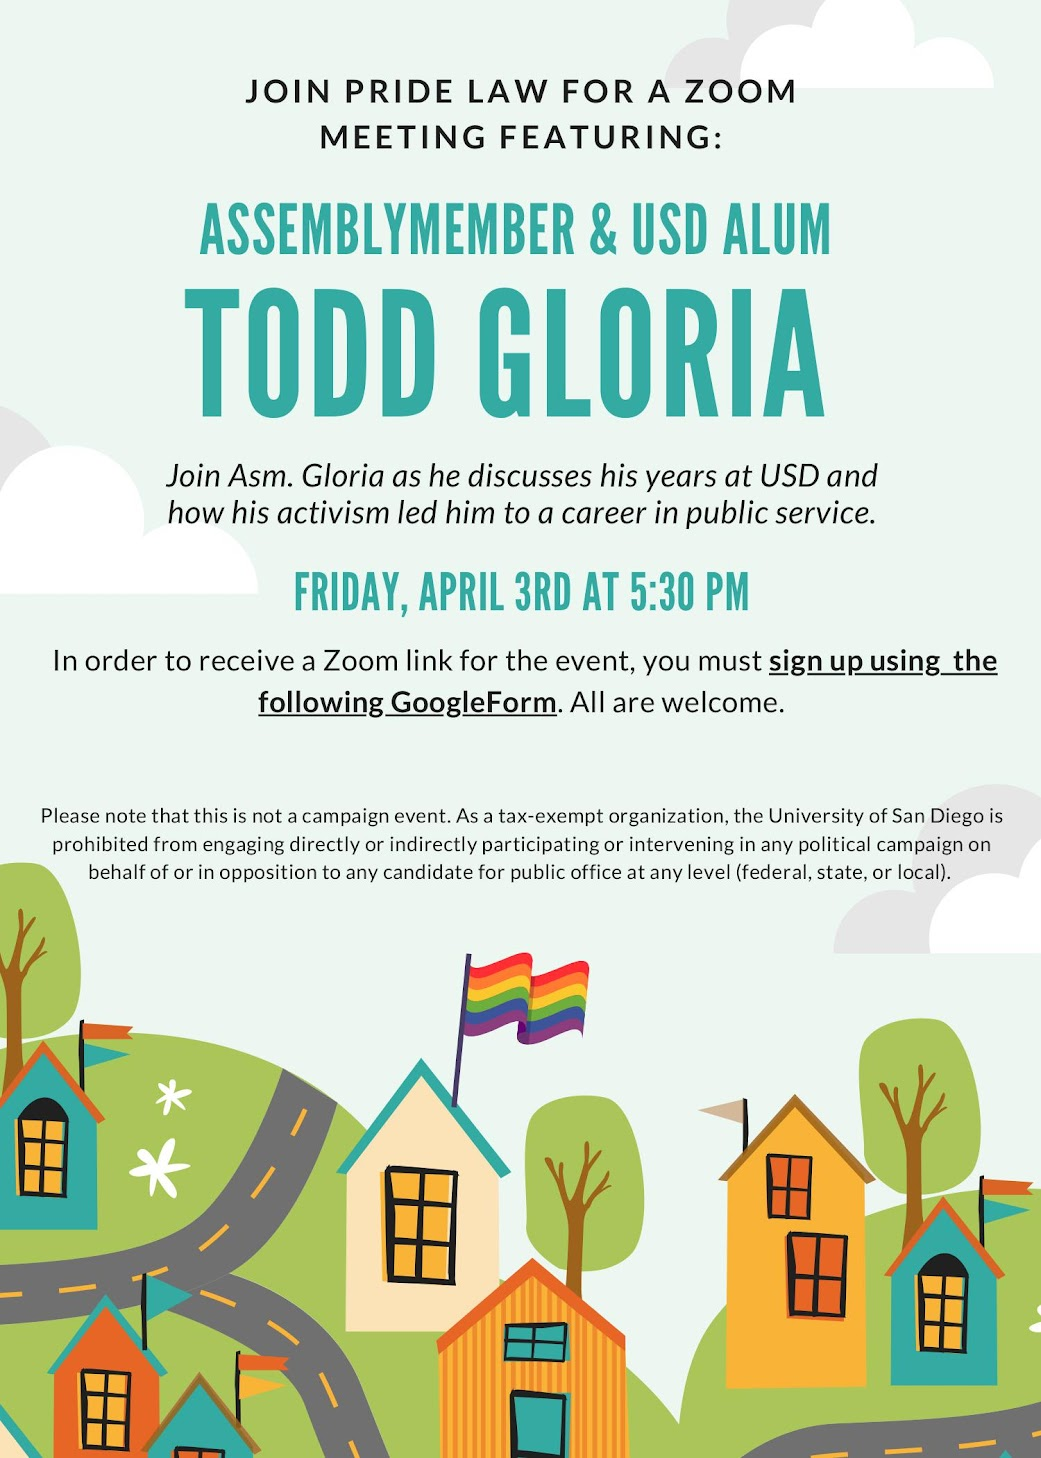 Pride Law: Assemblymember & USD Alum Todd Gloria Zoom Meeting, April 3 at 5:30pm, link to sign up